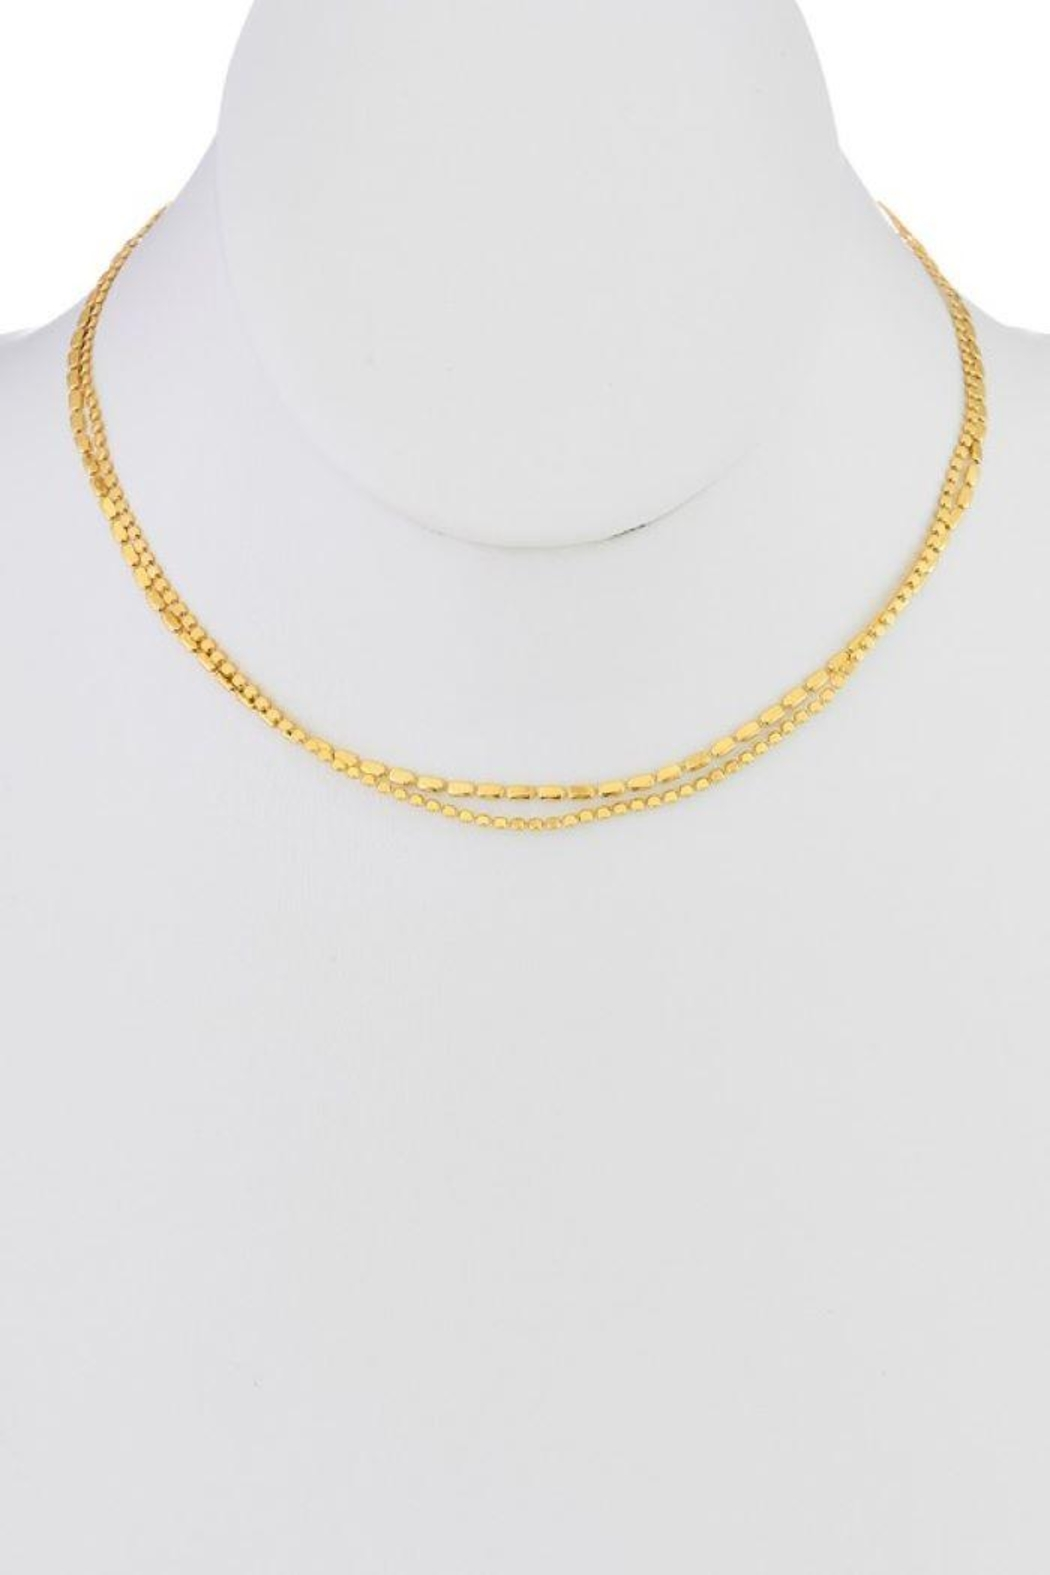 Ana Accessories Two-Layered Choker Necklace - Main Image